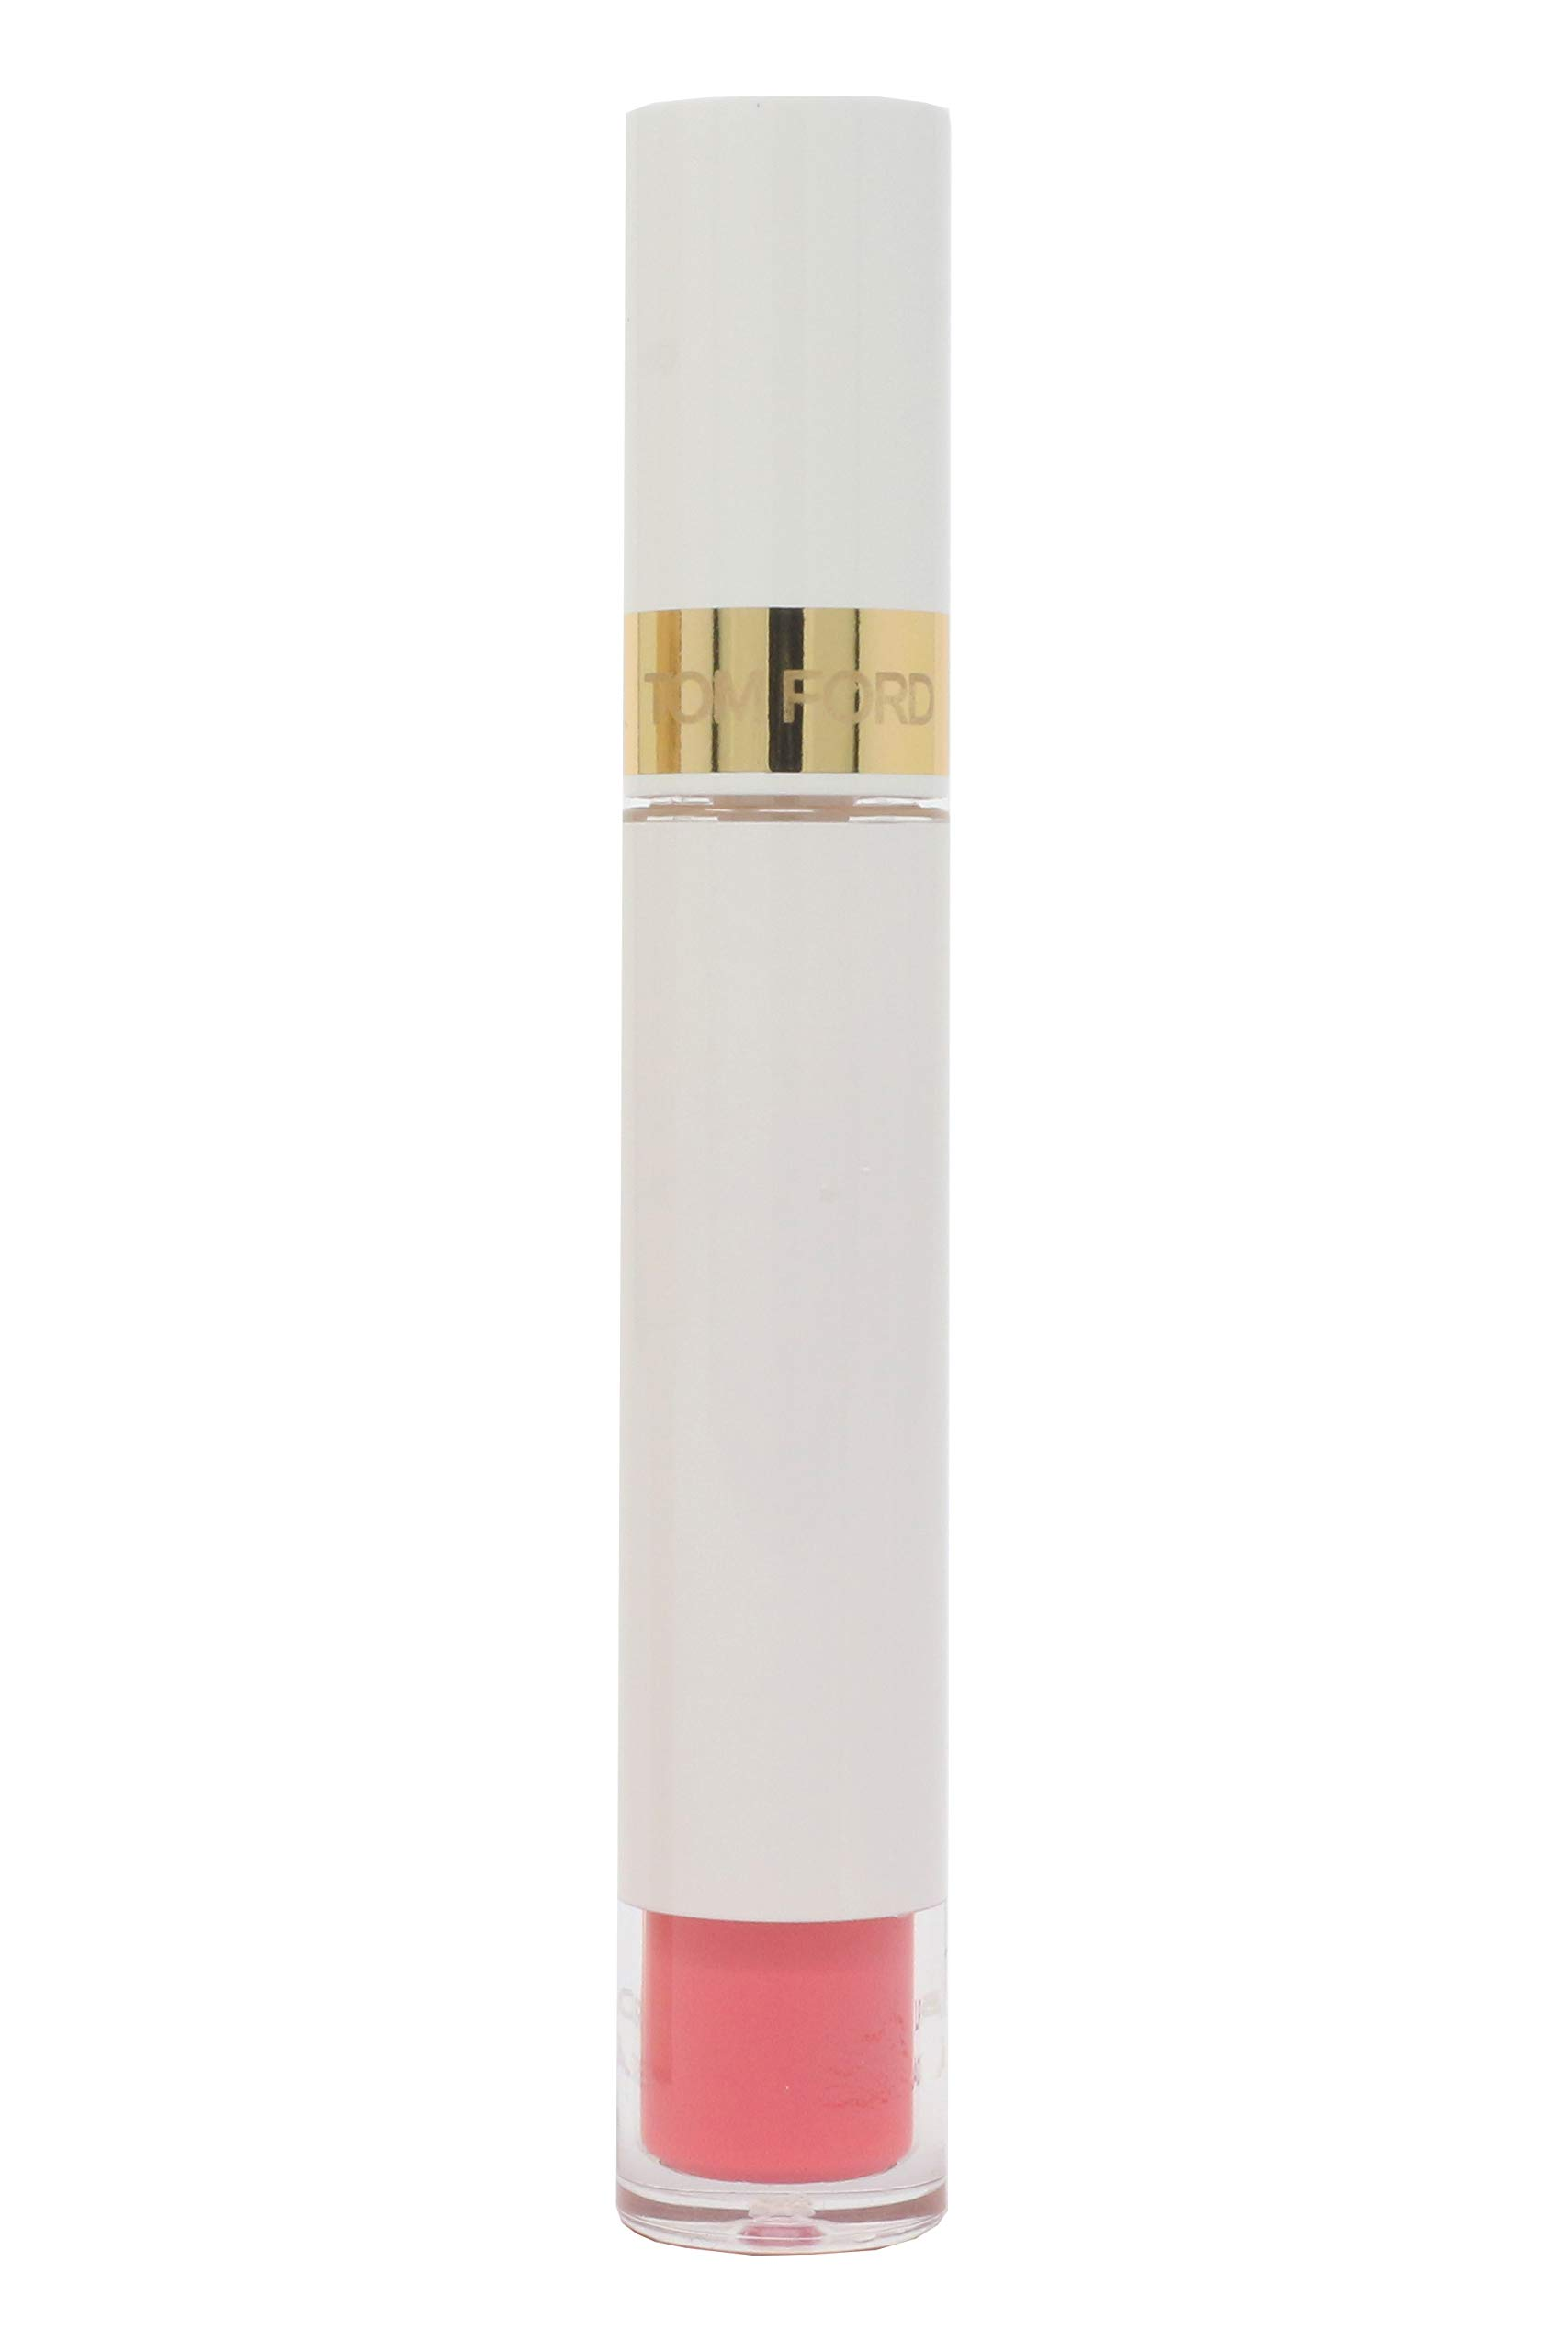 Tom Ford Soleil '04 In Ecstasy' Lip Lacquer Liquid Tint 0.09oz/2.7ml New In Box